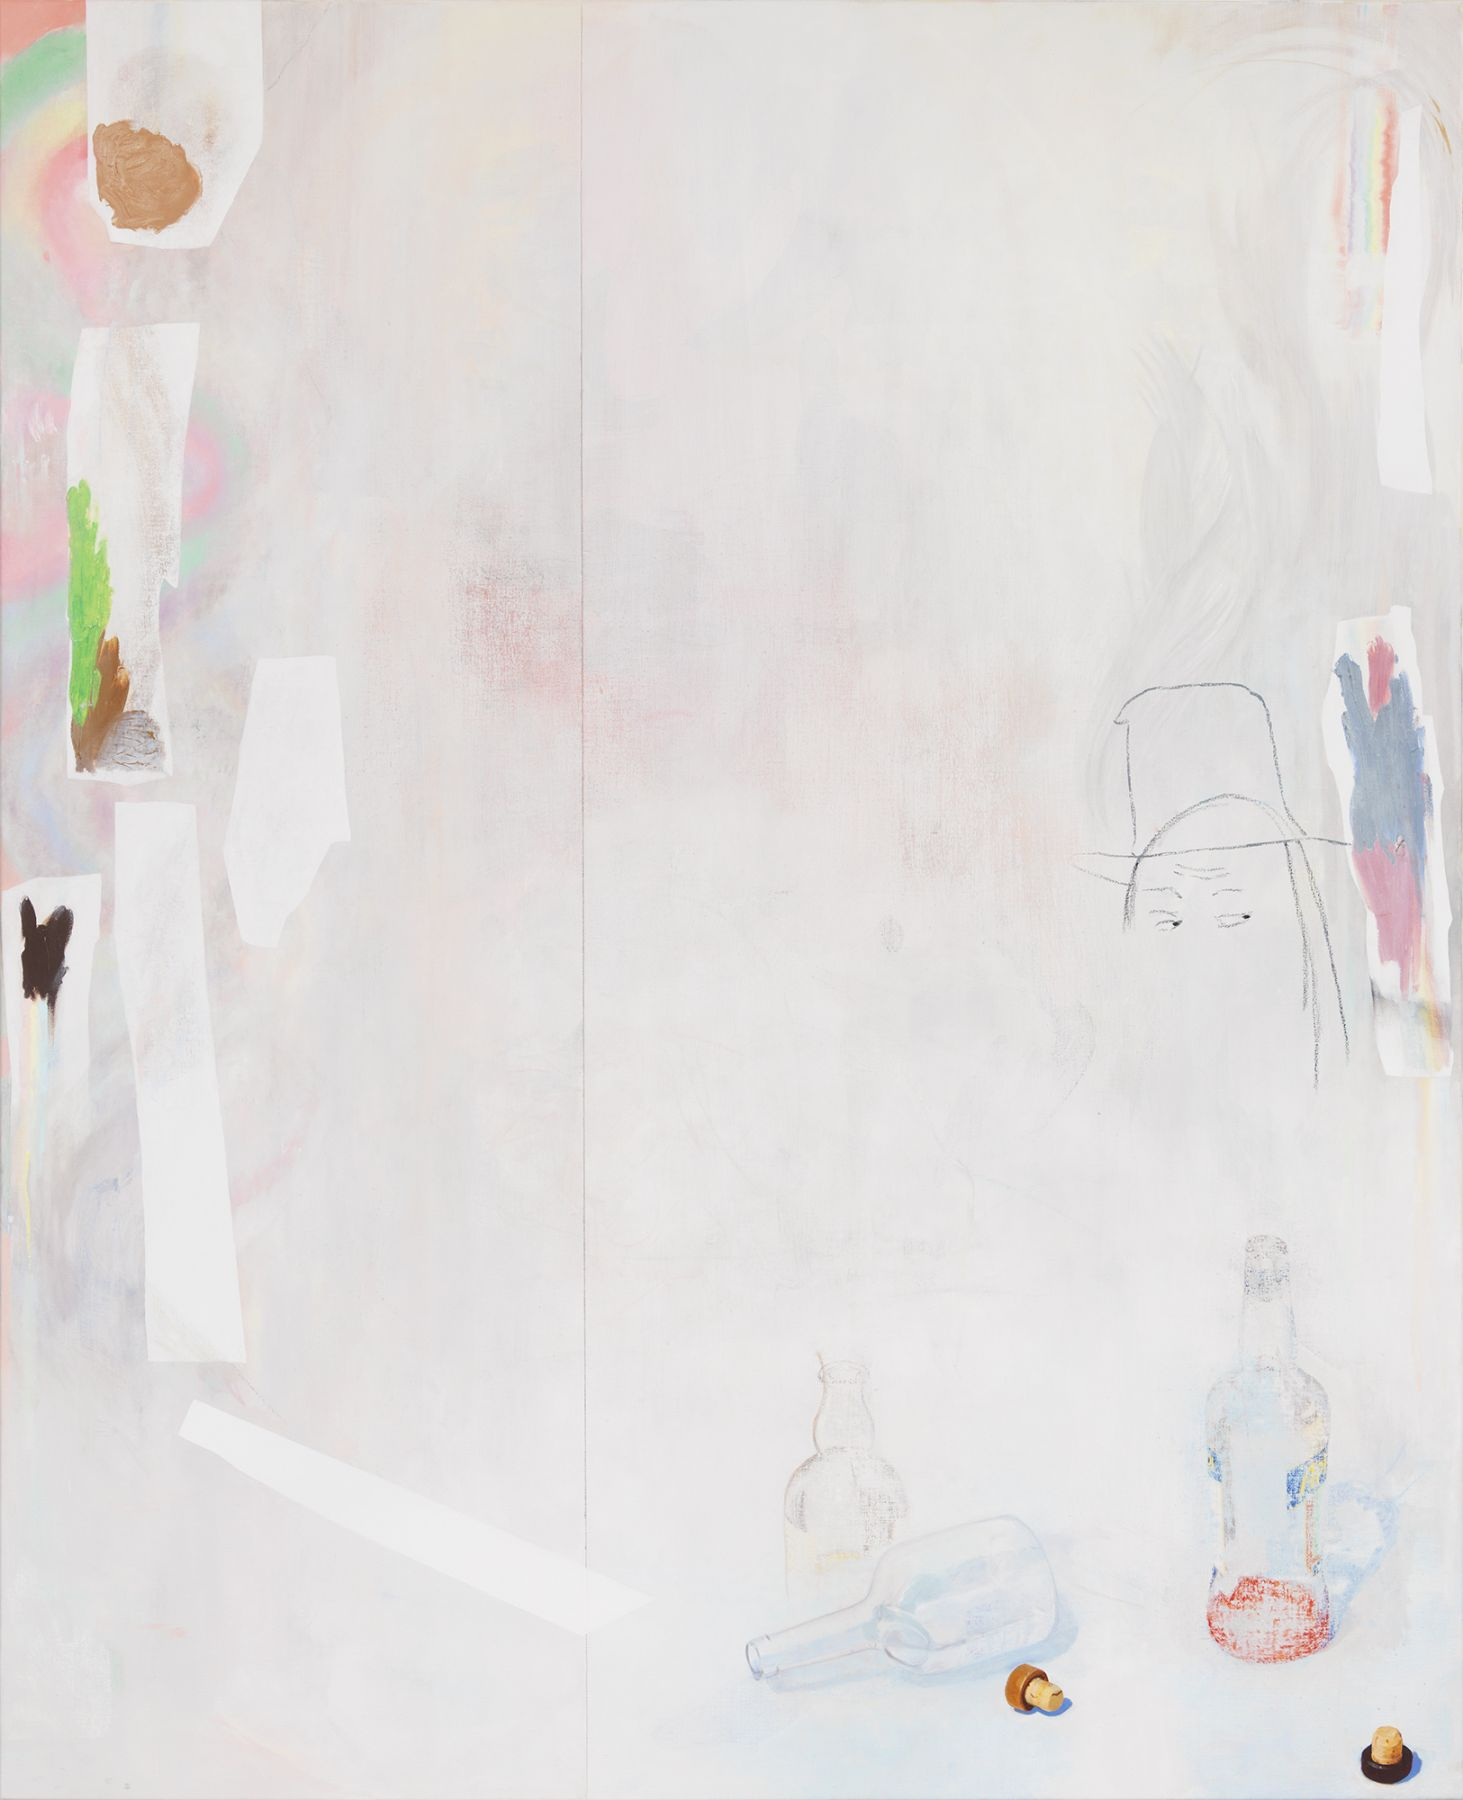 Monika Baer In Pieces, 2013-2015 Oil on canvas 98 3/8 x 80 3/8 inches (250 x 204 cm)